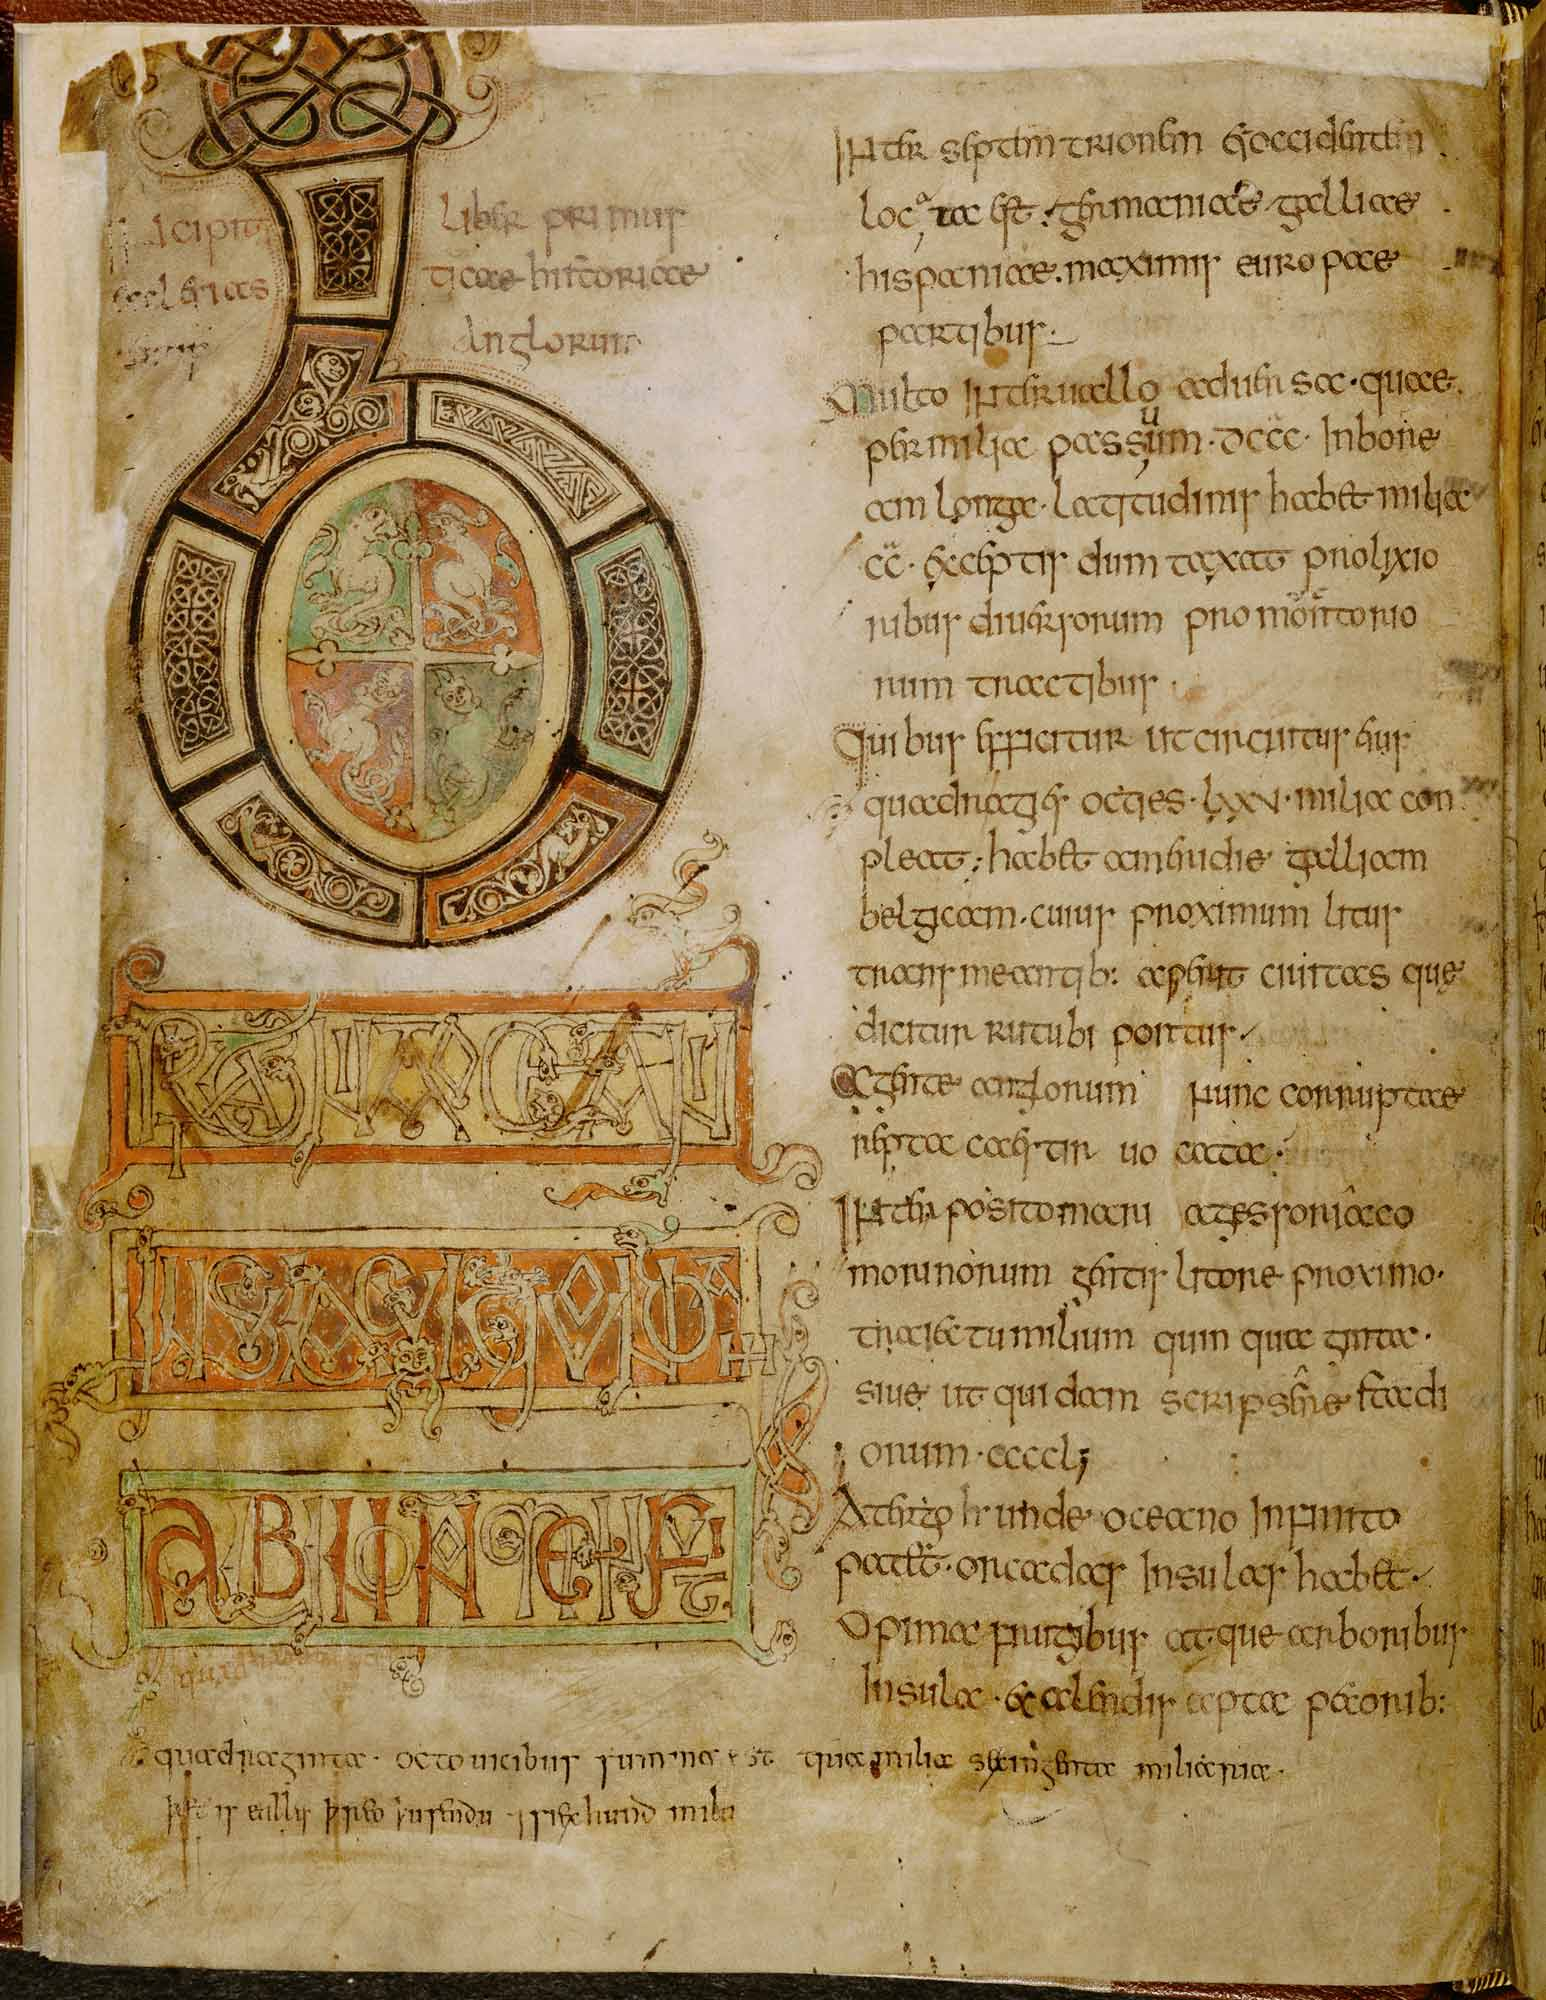 The Venerable Bede, Historia Ecclesiastica Gentis Anglorum (Ecclesiastical History of the English People)f.5v